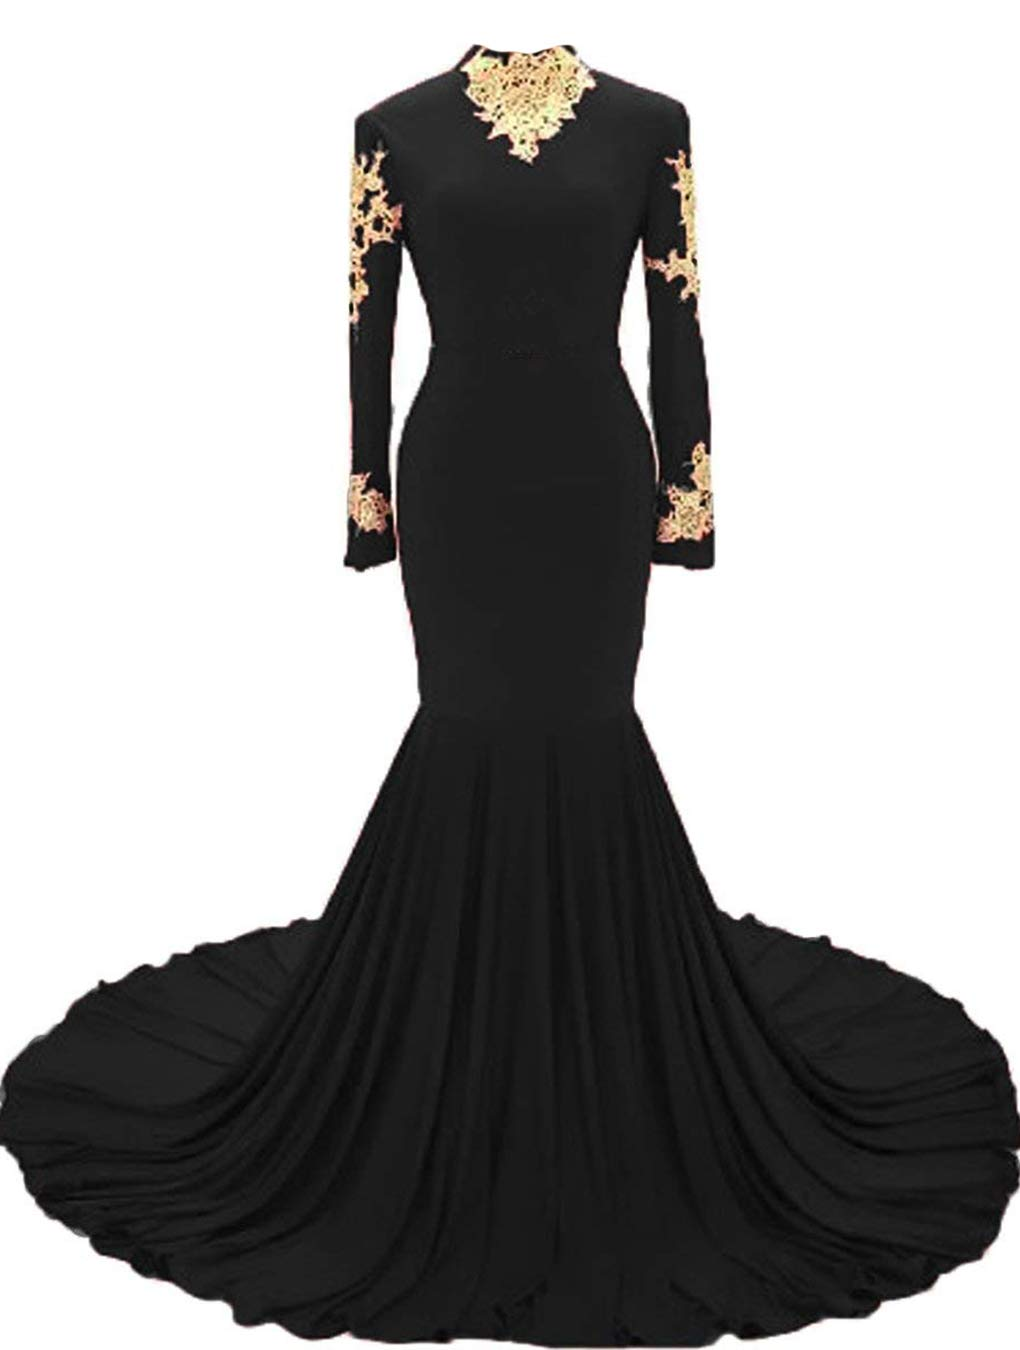 54738ce9e8 ... Lace High Neck Prom Dresses 2018 Mermaid Evening Dress Long Sleeves  UG061 Size 18 Black.   